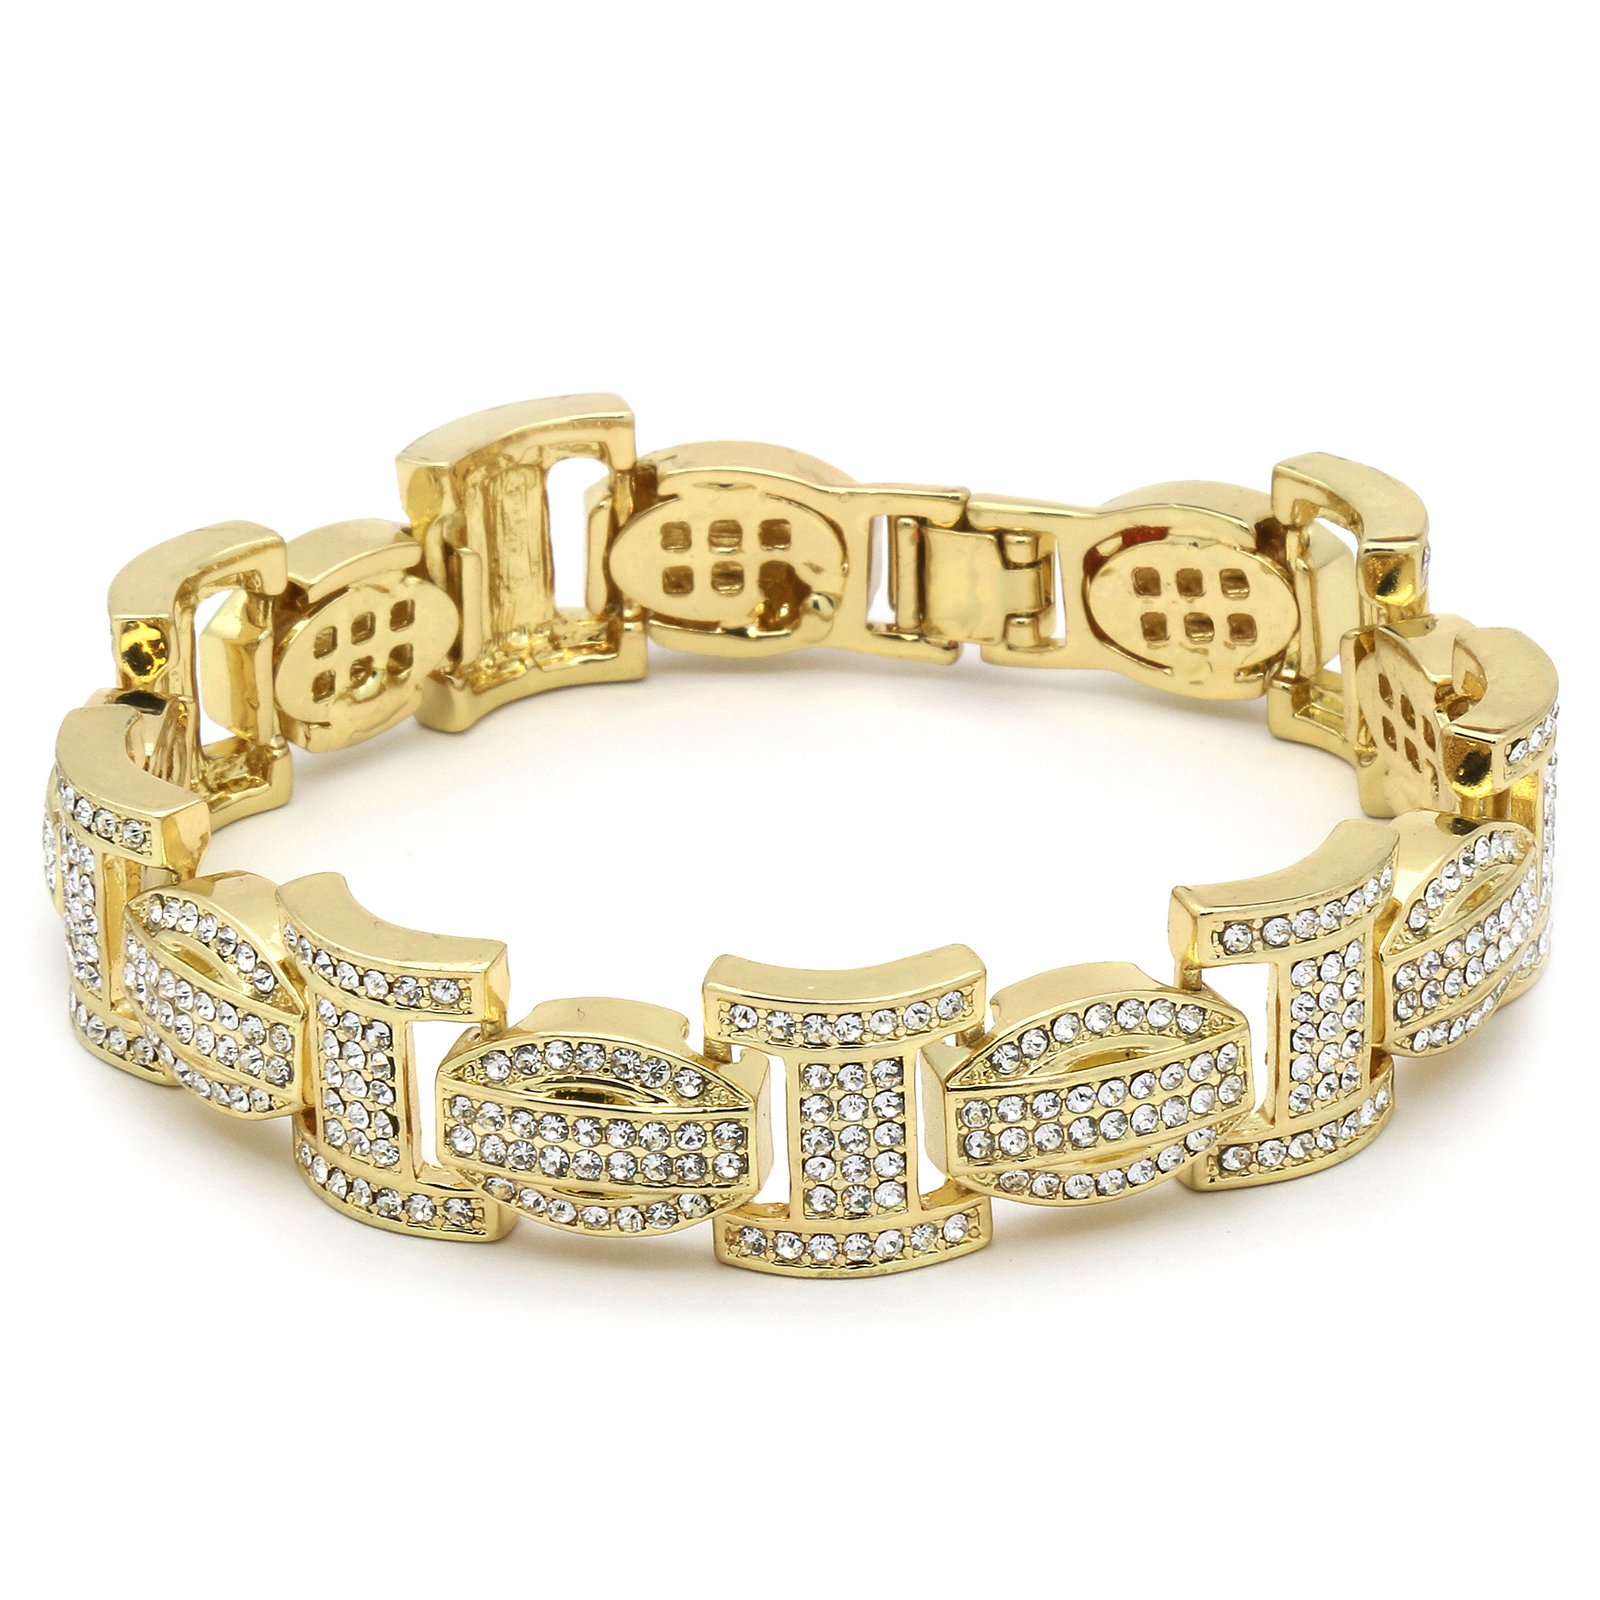 Mens Gold Tone I Thick Link Iced Out Clear Cz Stones Hip Hop Bracelet 9'' Inch